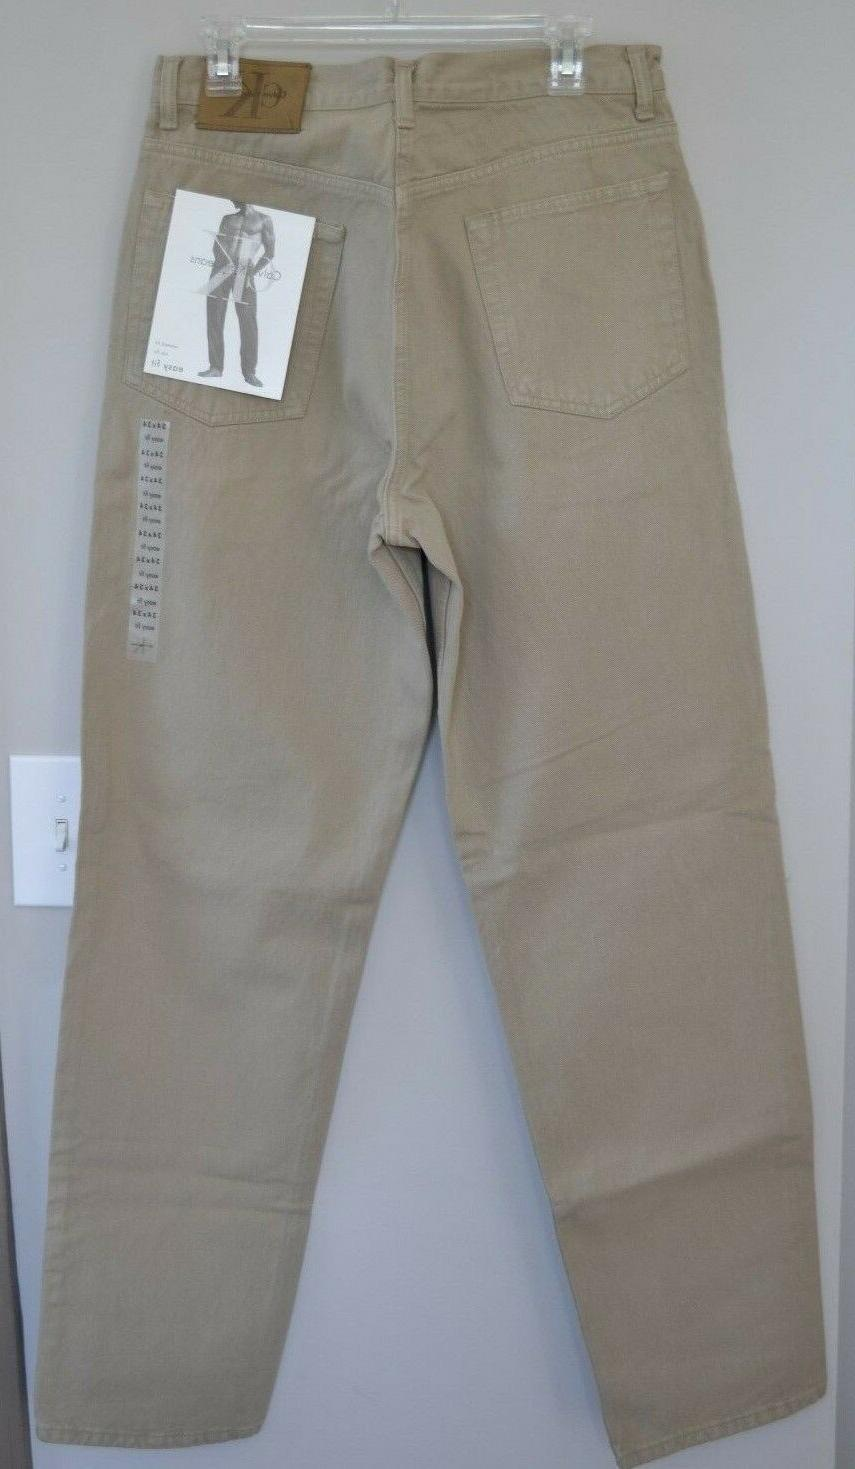 NWT 90's Men's Beige Calvin Klein Jeans 34x34 Relaxed Fit